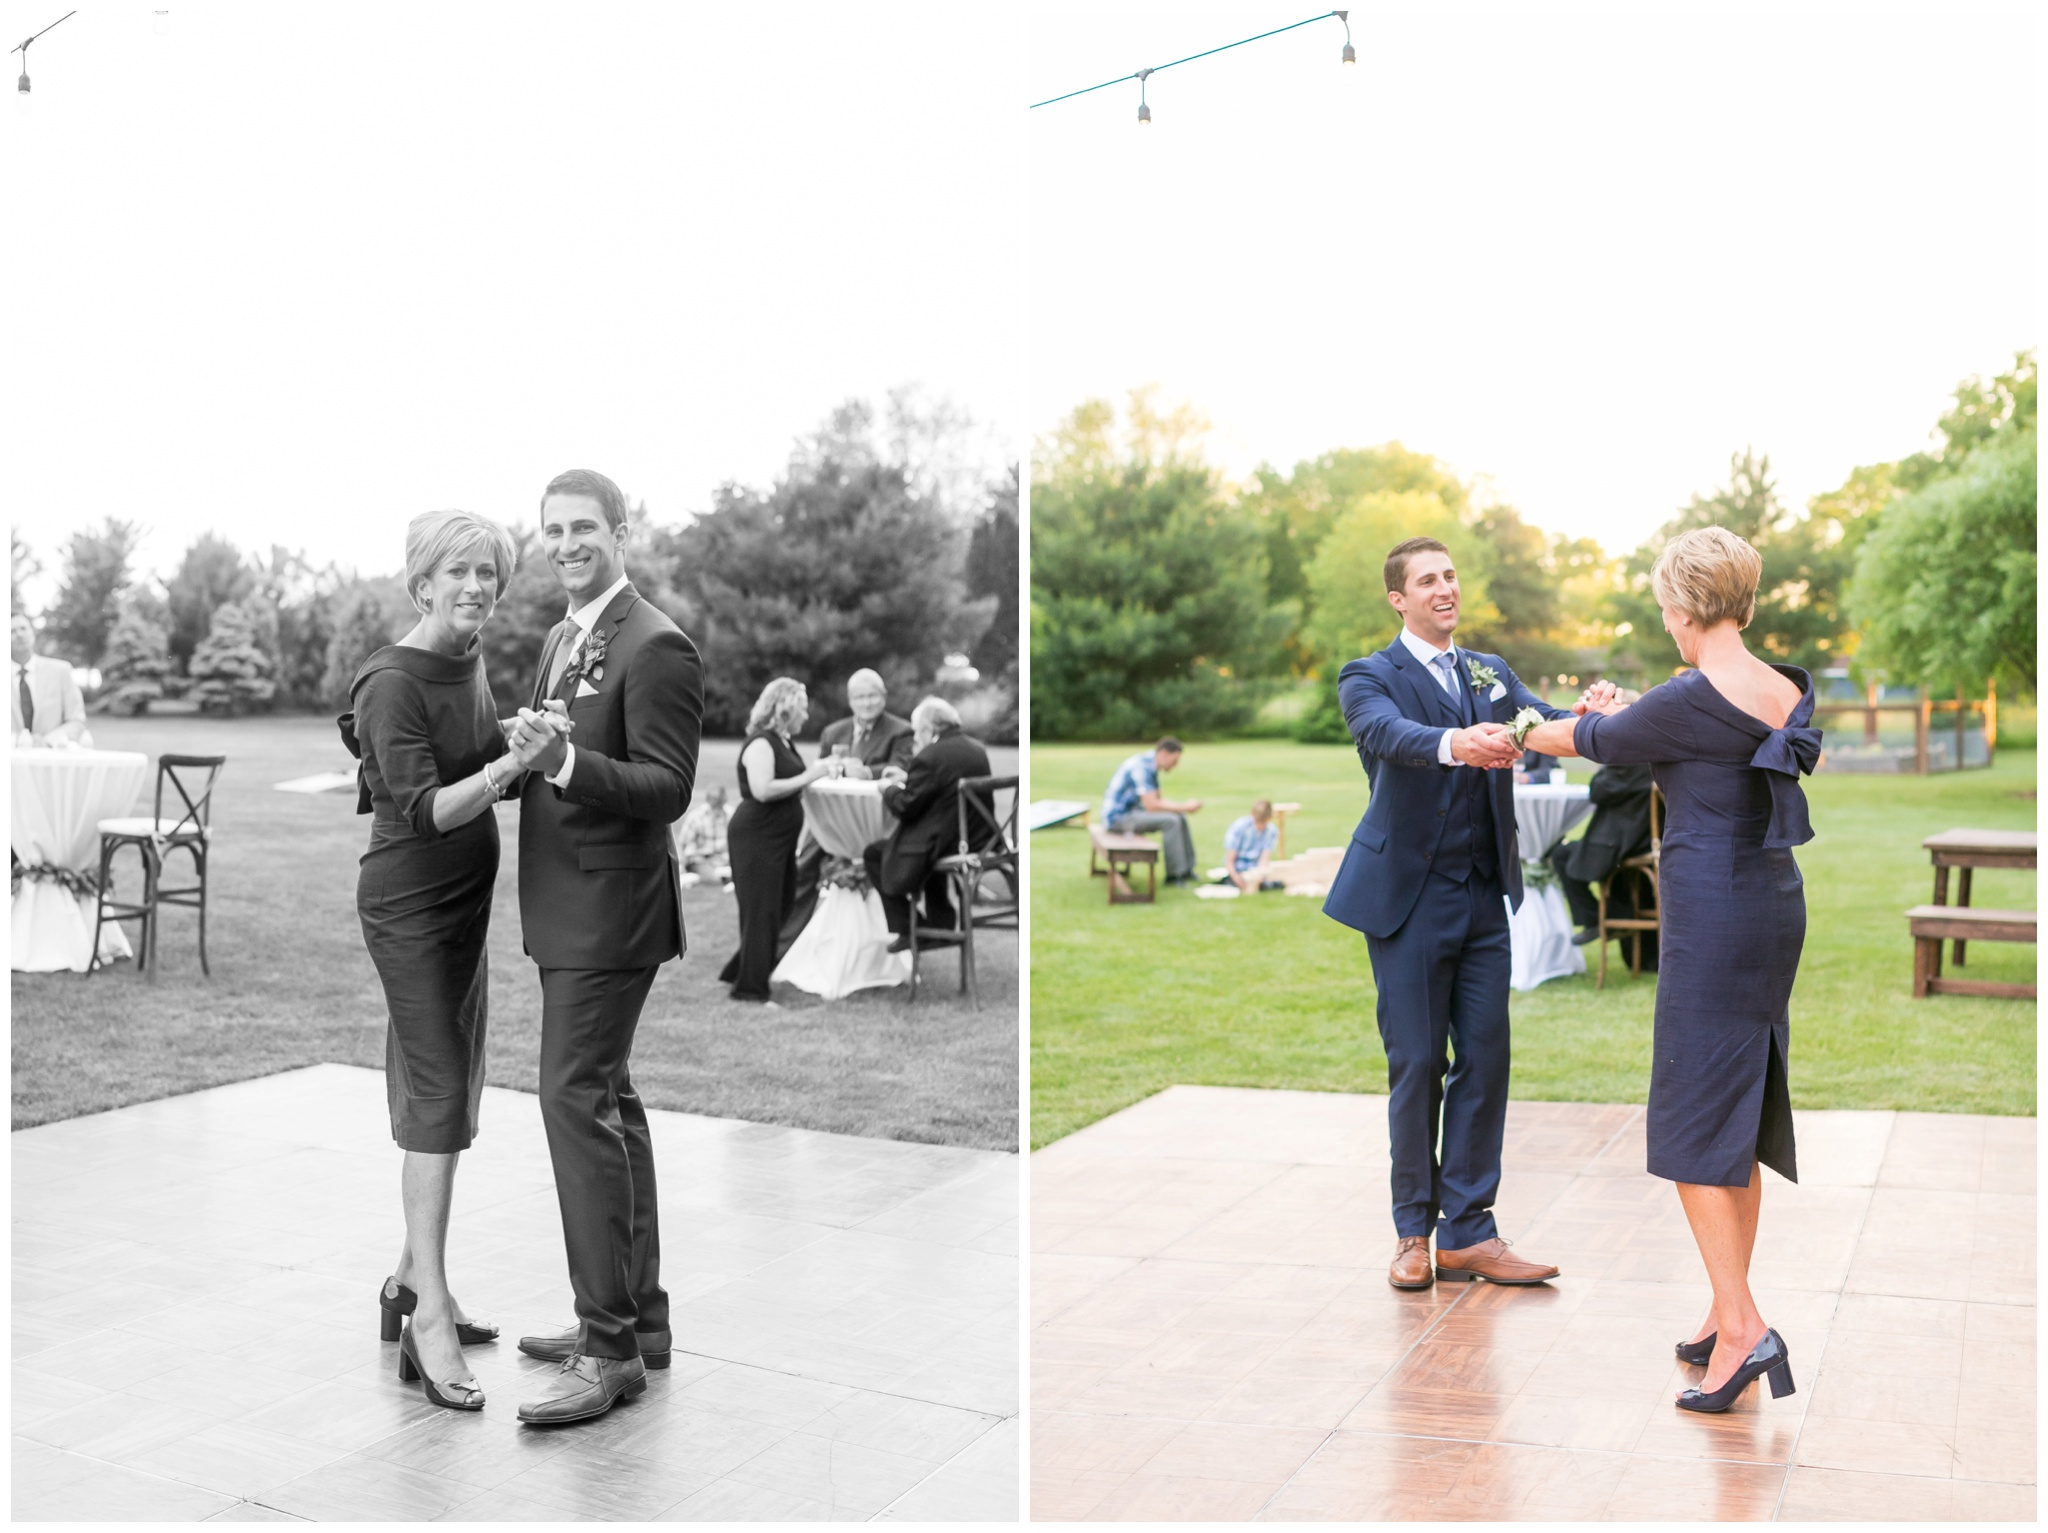 private_estate_wedding_stoughton_wisconsin_wedding_caynay_photo_3894.jpg